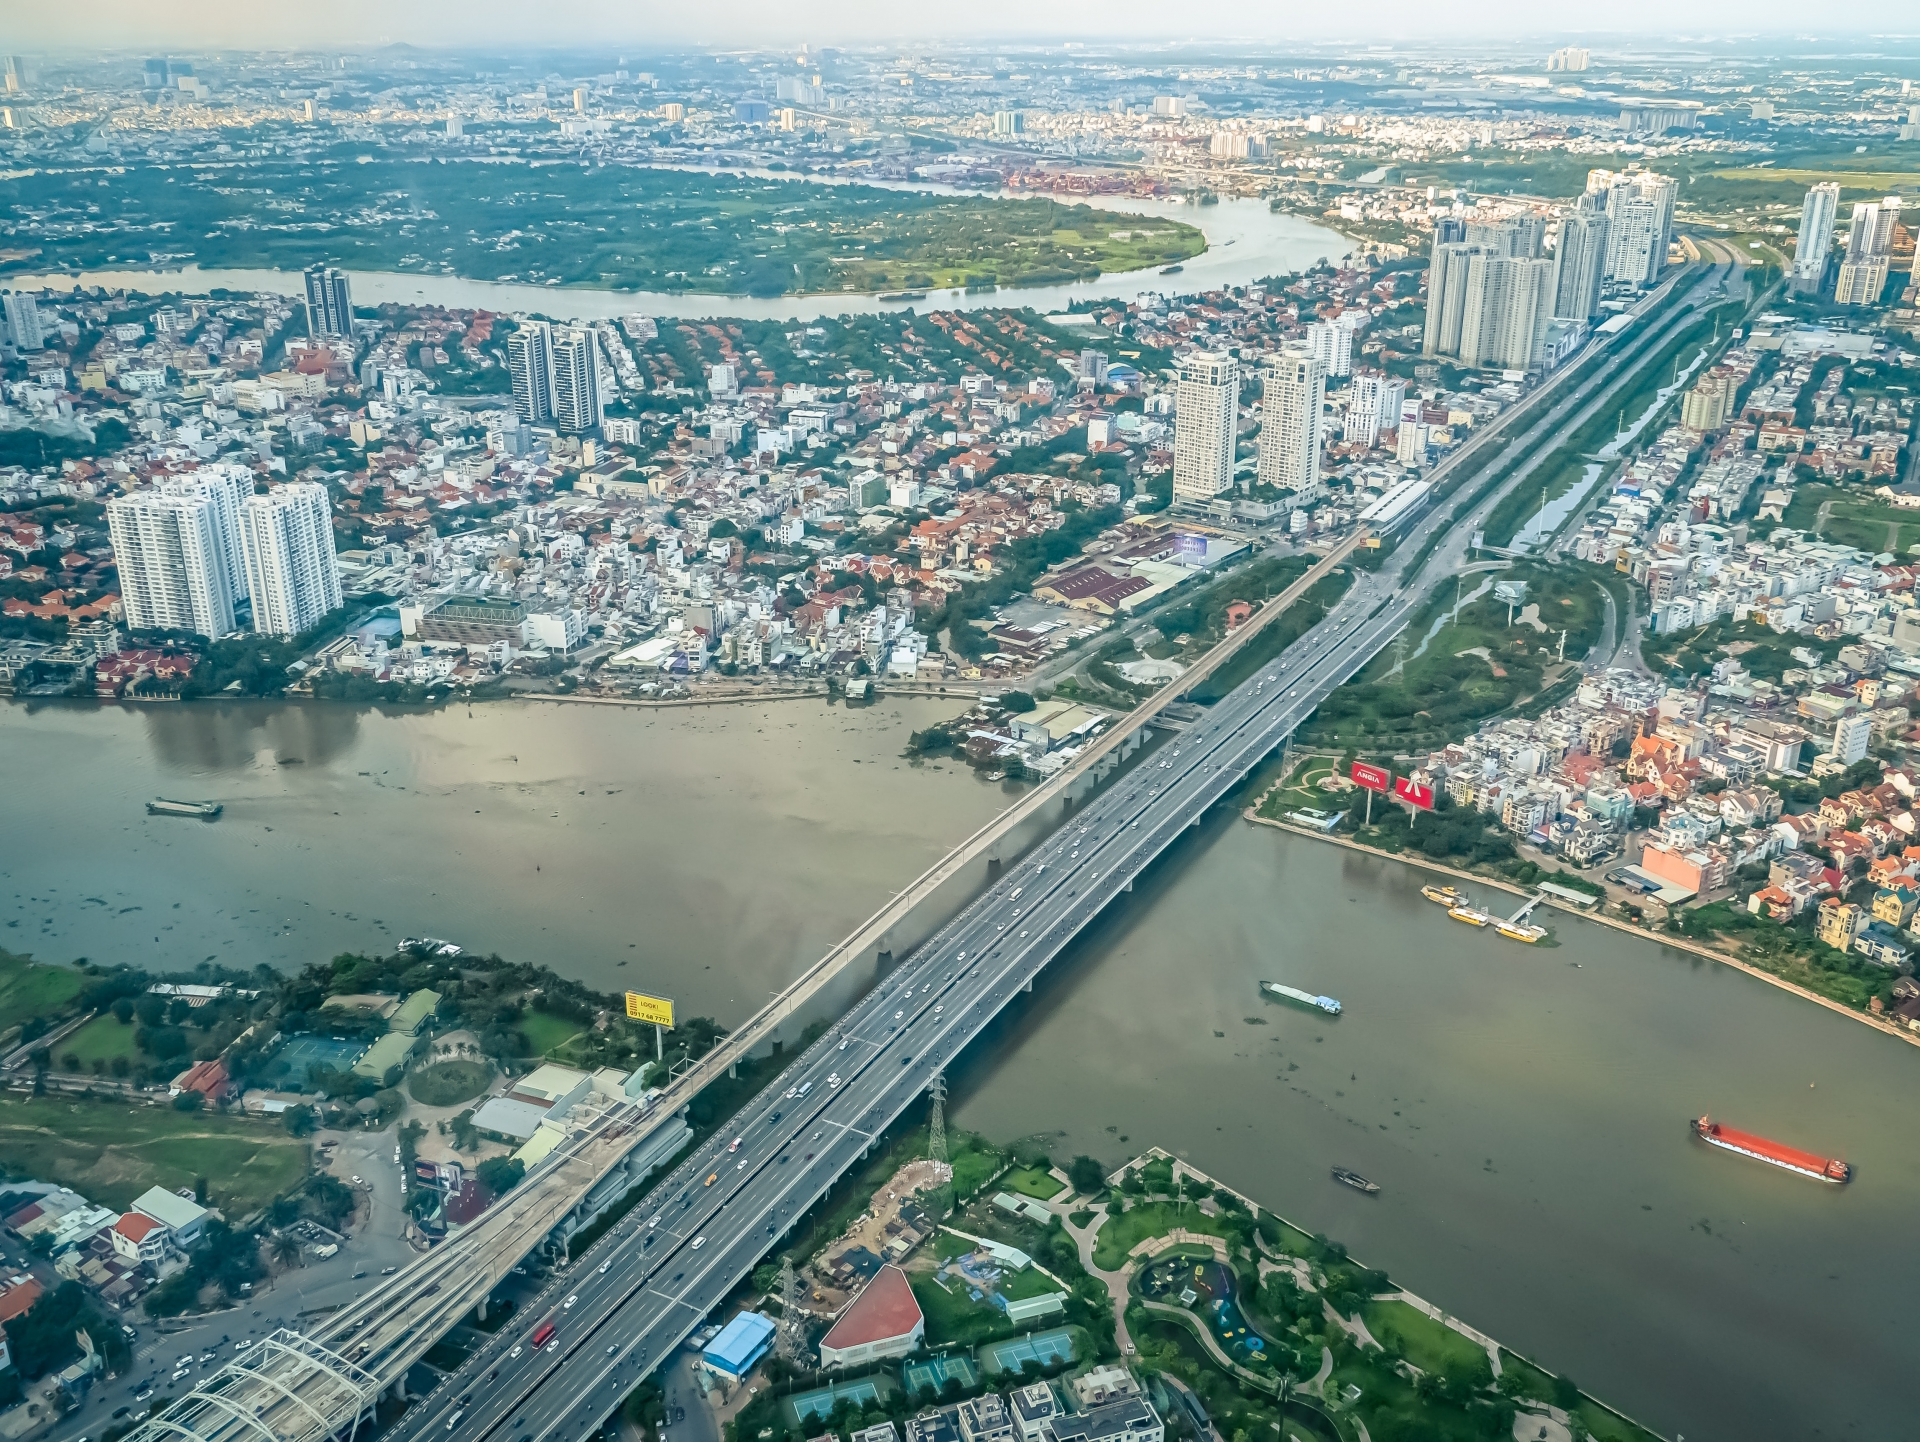 FDI inflows to Ho Chi Minh City dip over COVID-19 worries in first seven months